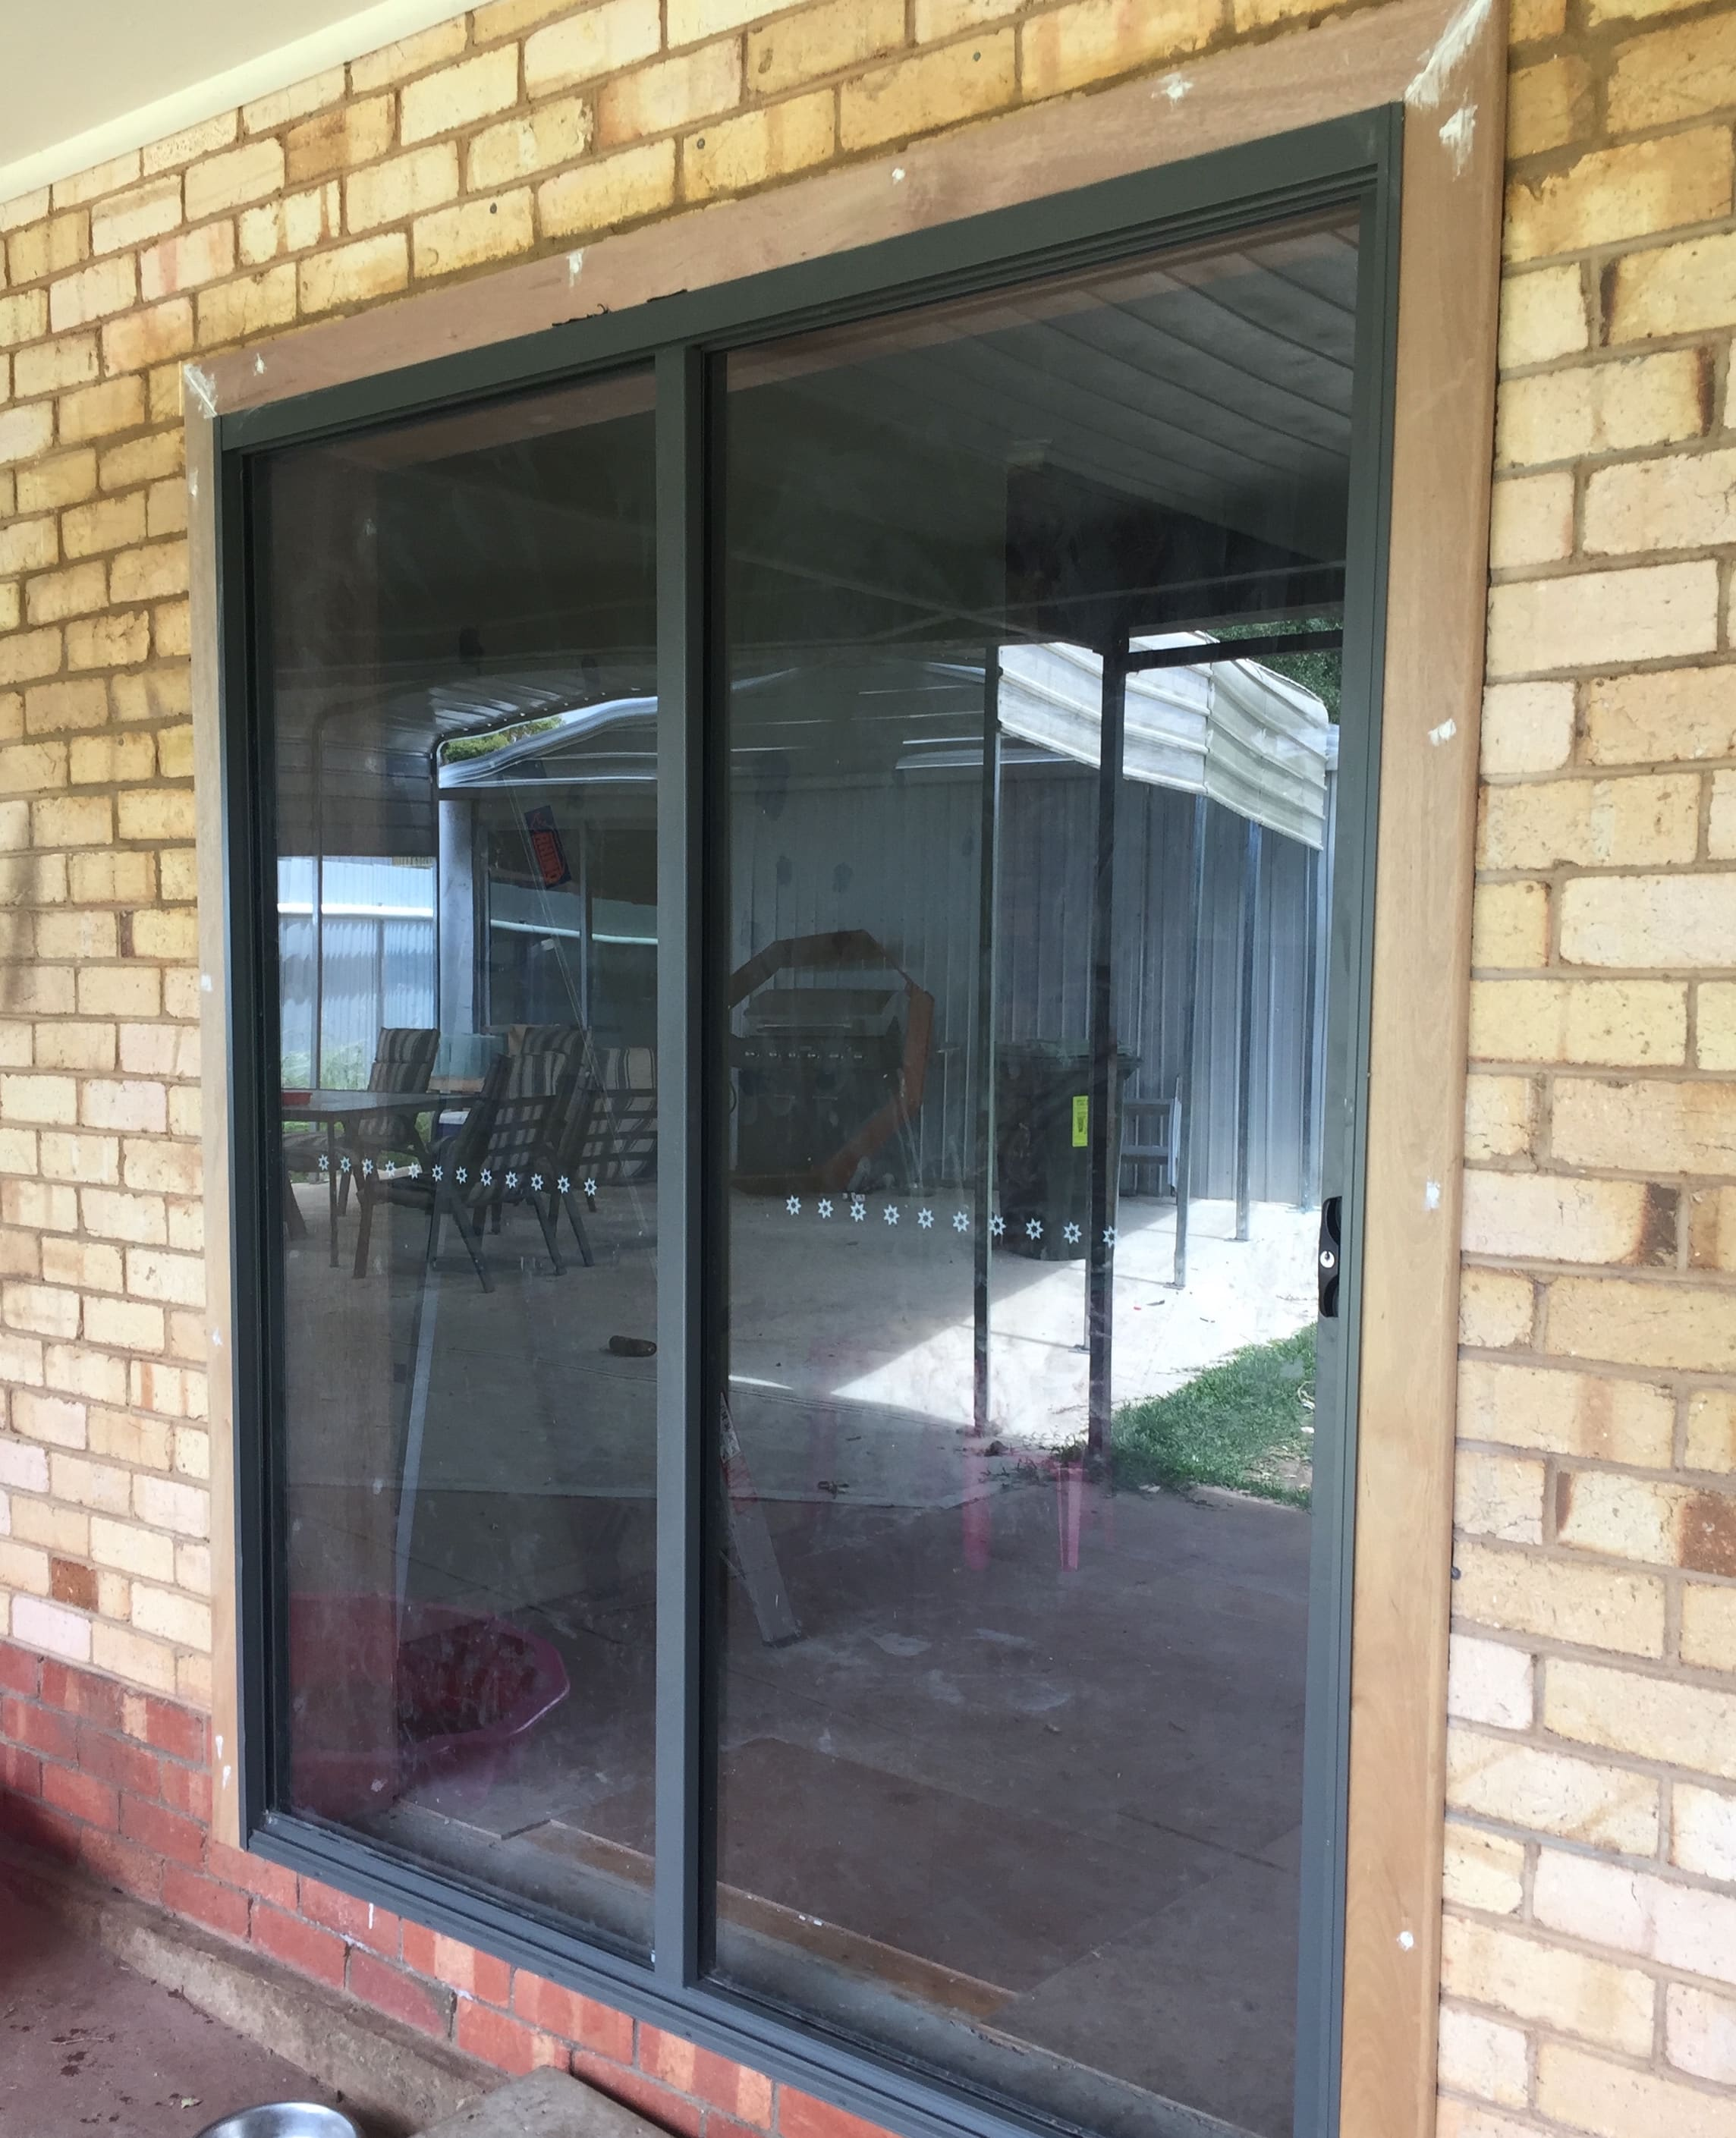 Sliding glass door into living room space